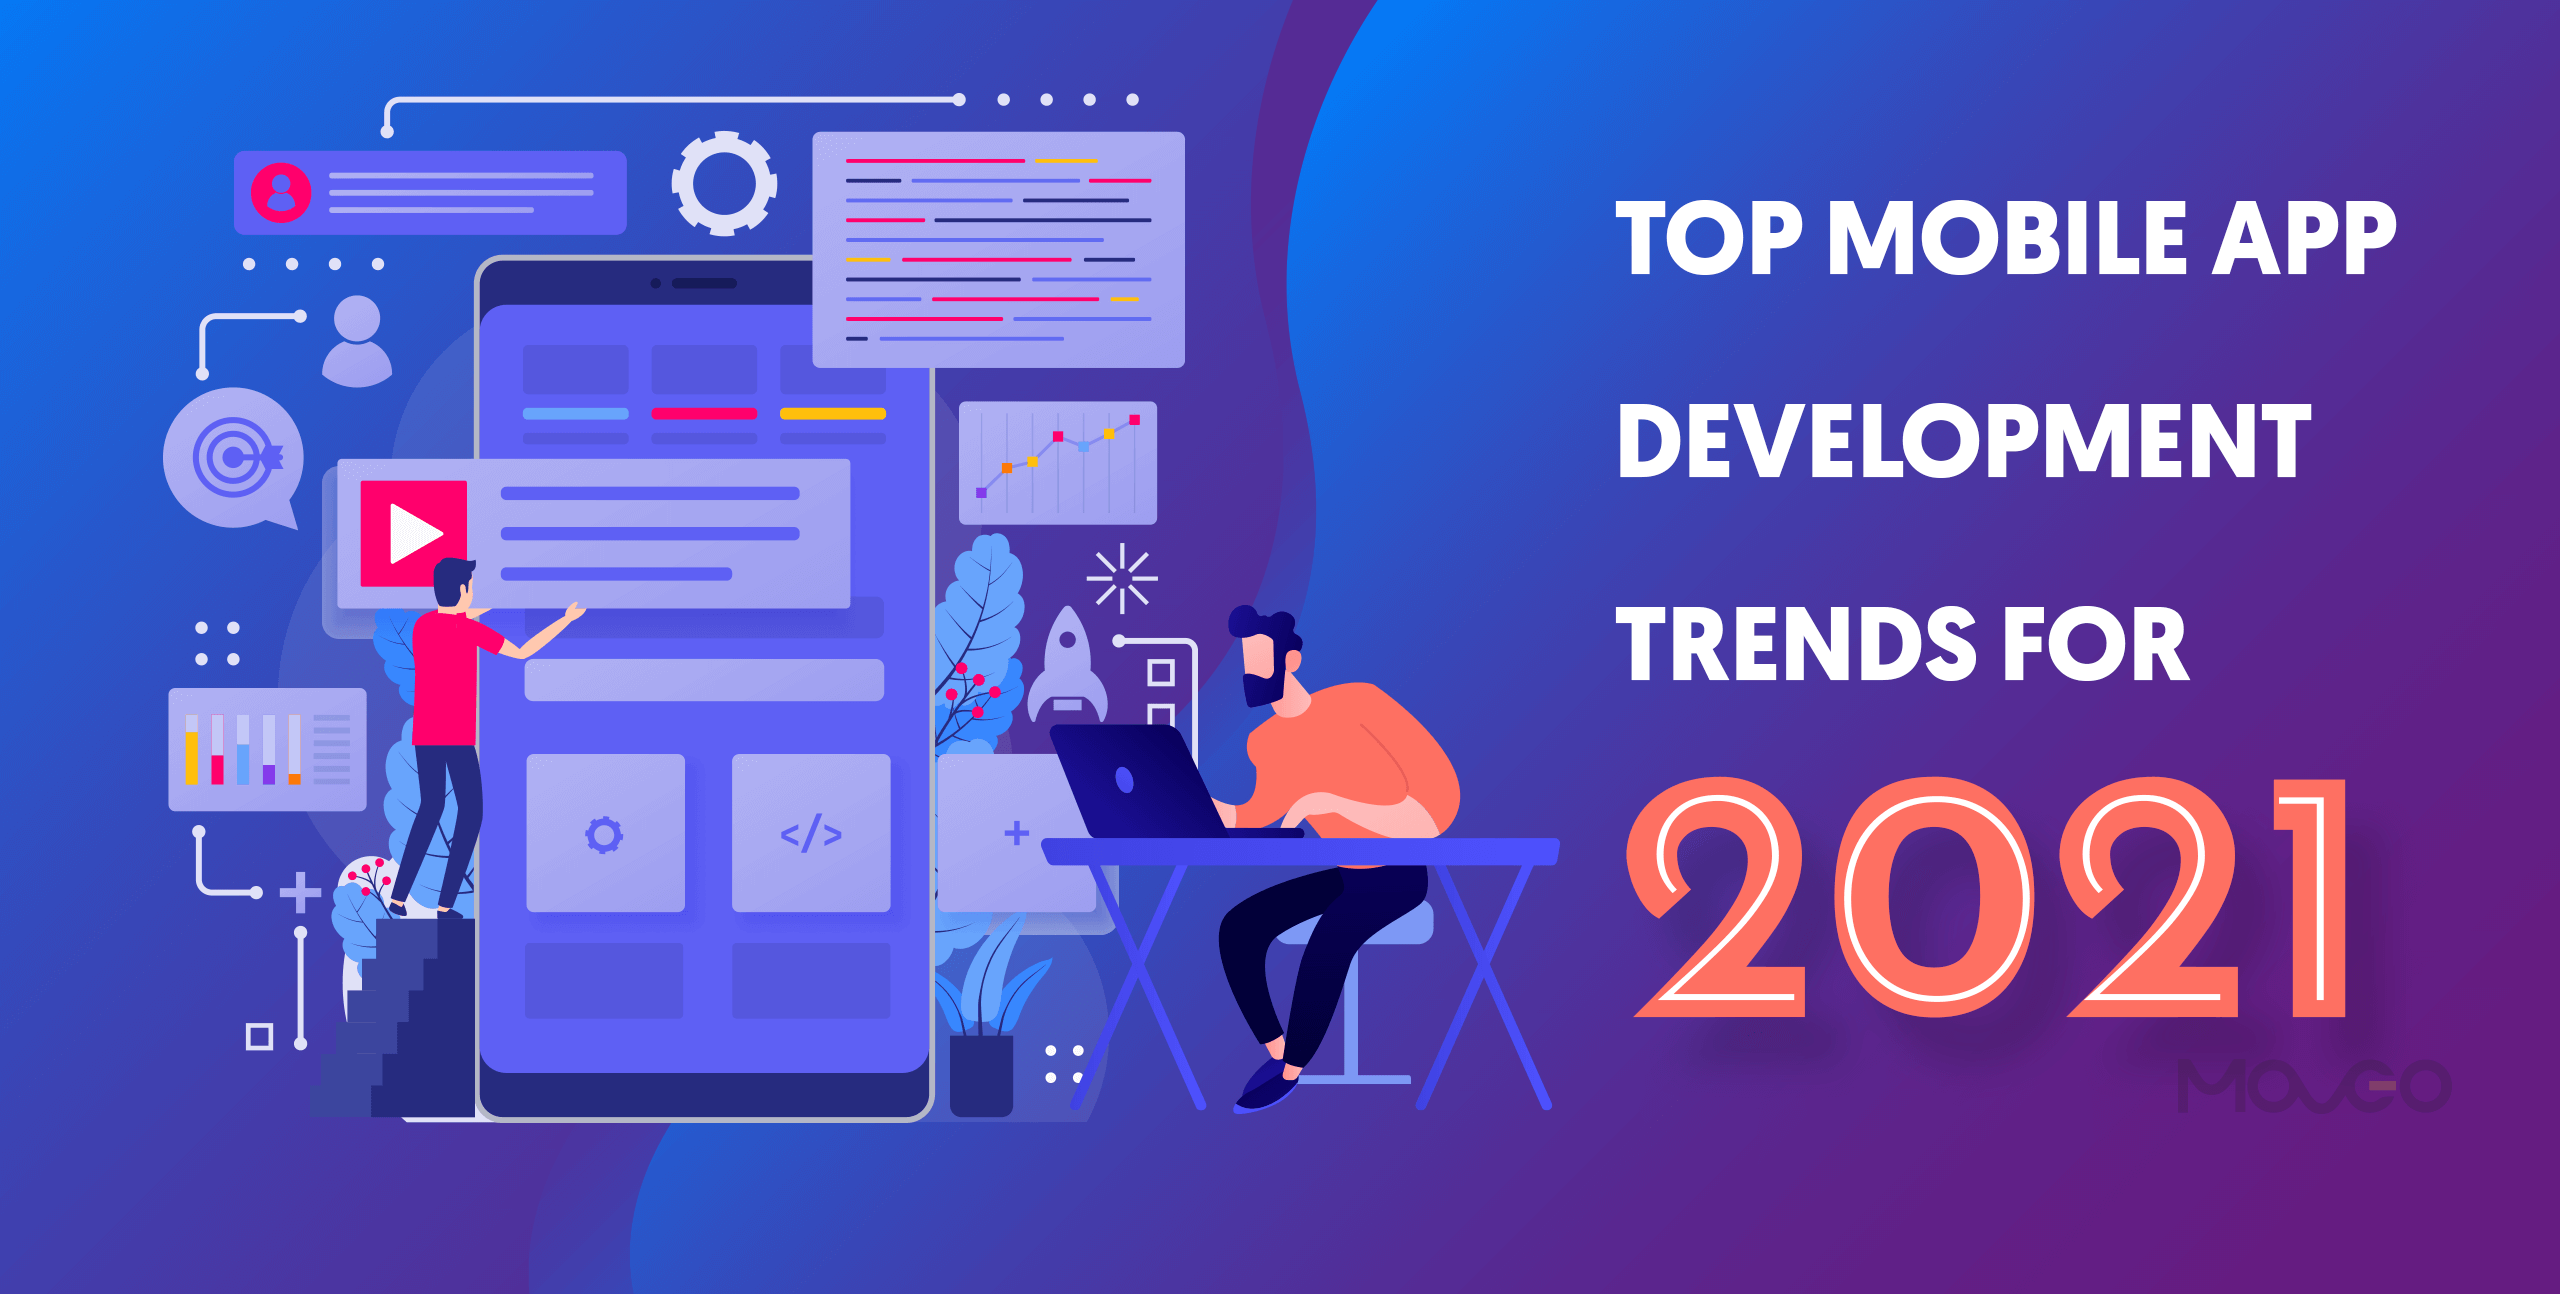 Top Mobile App Development Trends for 2021 – Addressing Challenges Of The New World